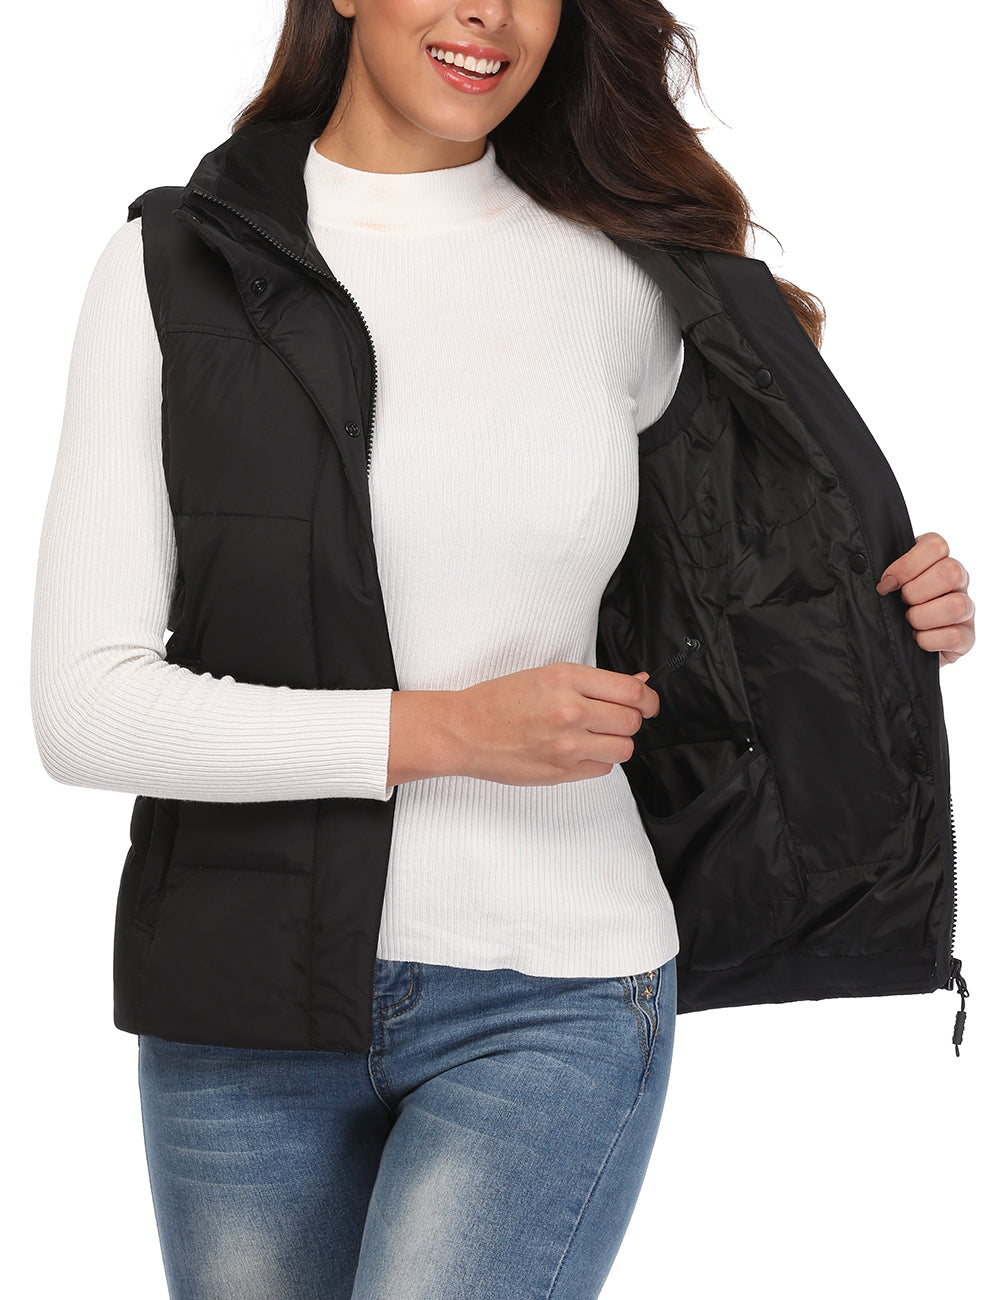 (Open-box) Women Heated Down Vest - Slim Fit - ORORO